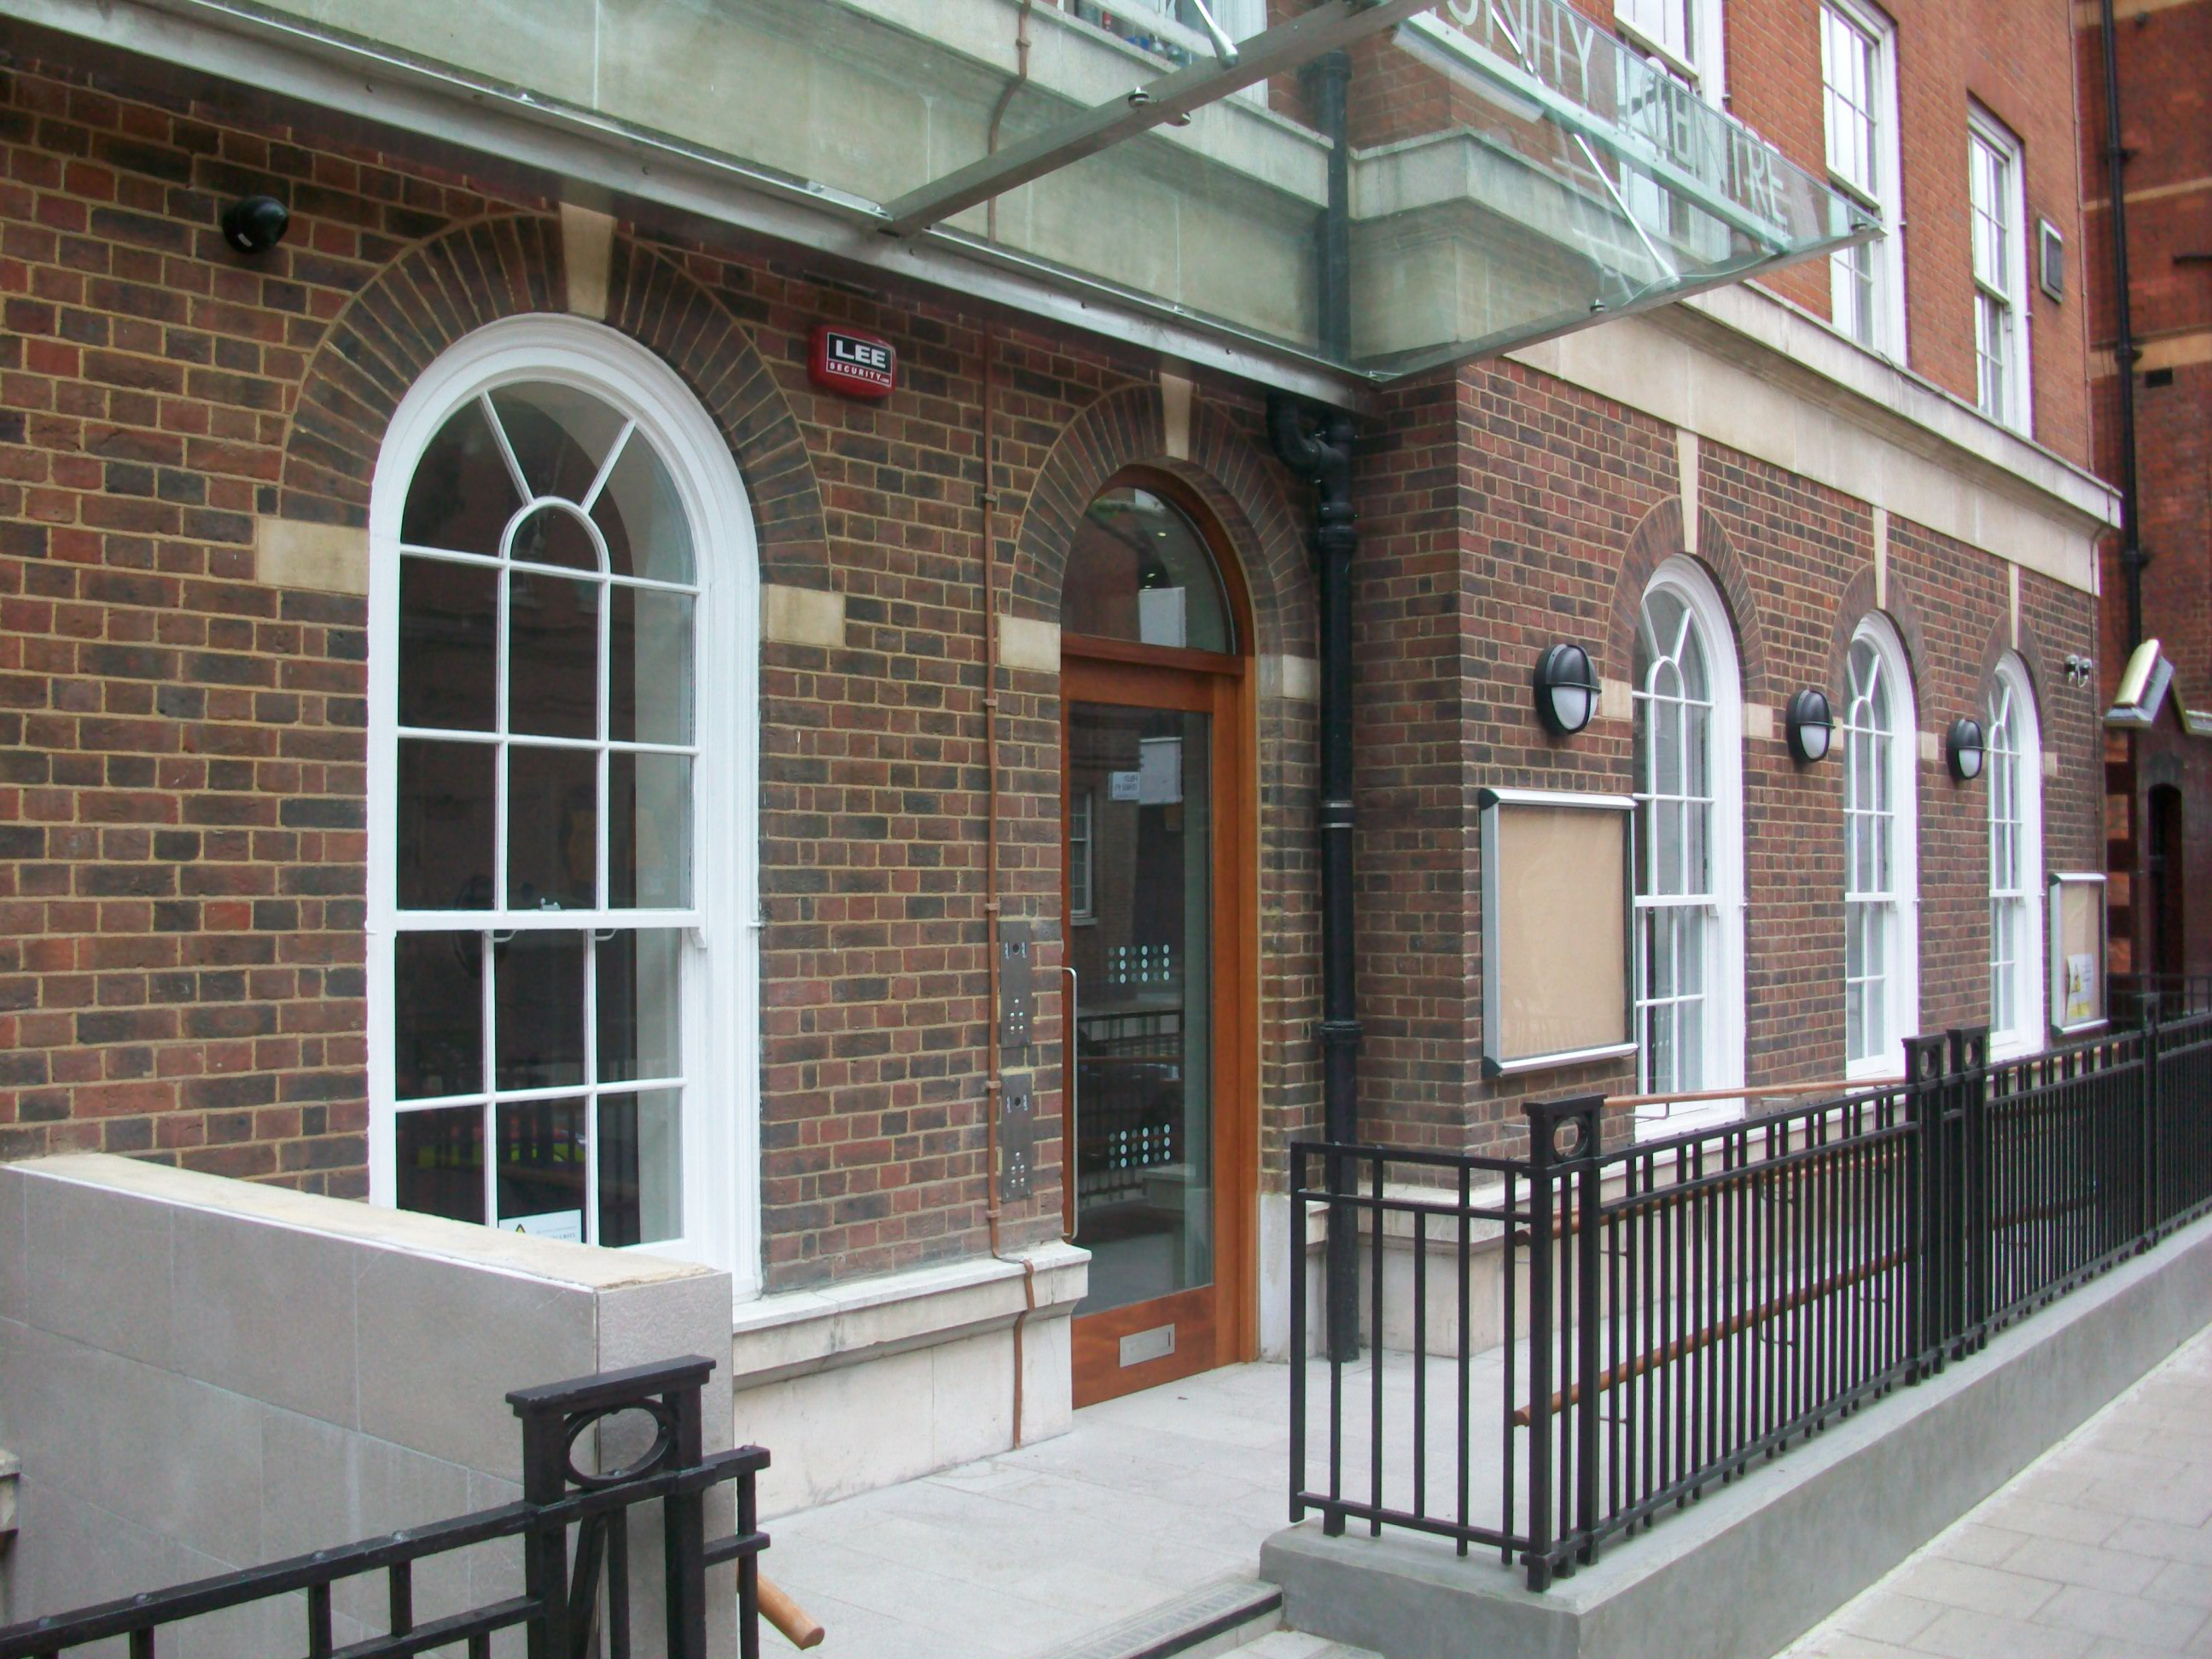 Outside of community centre in Foley Street